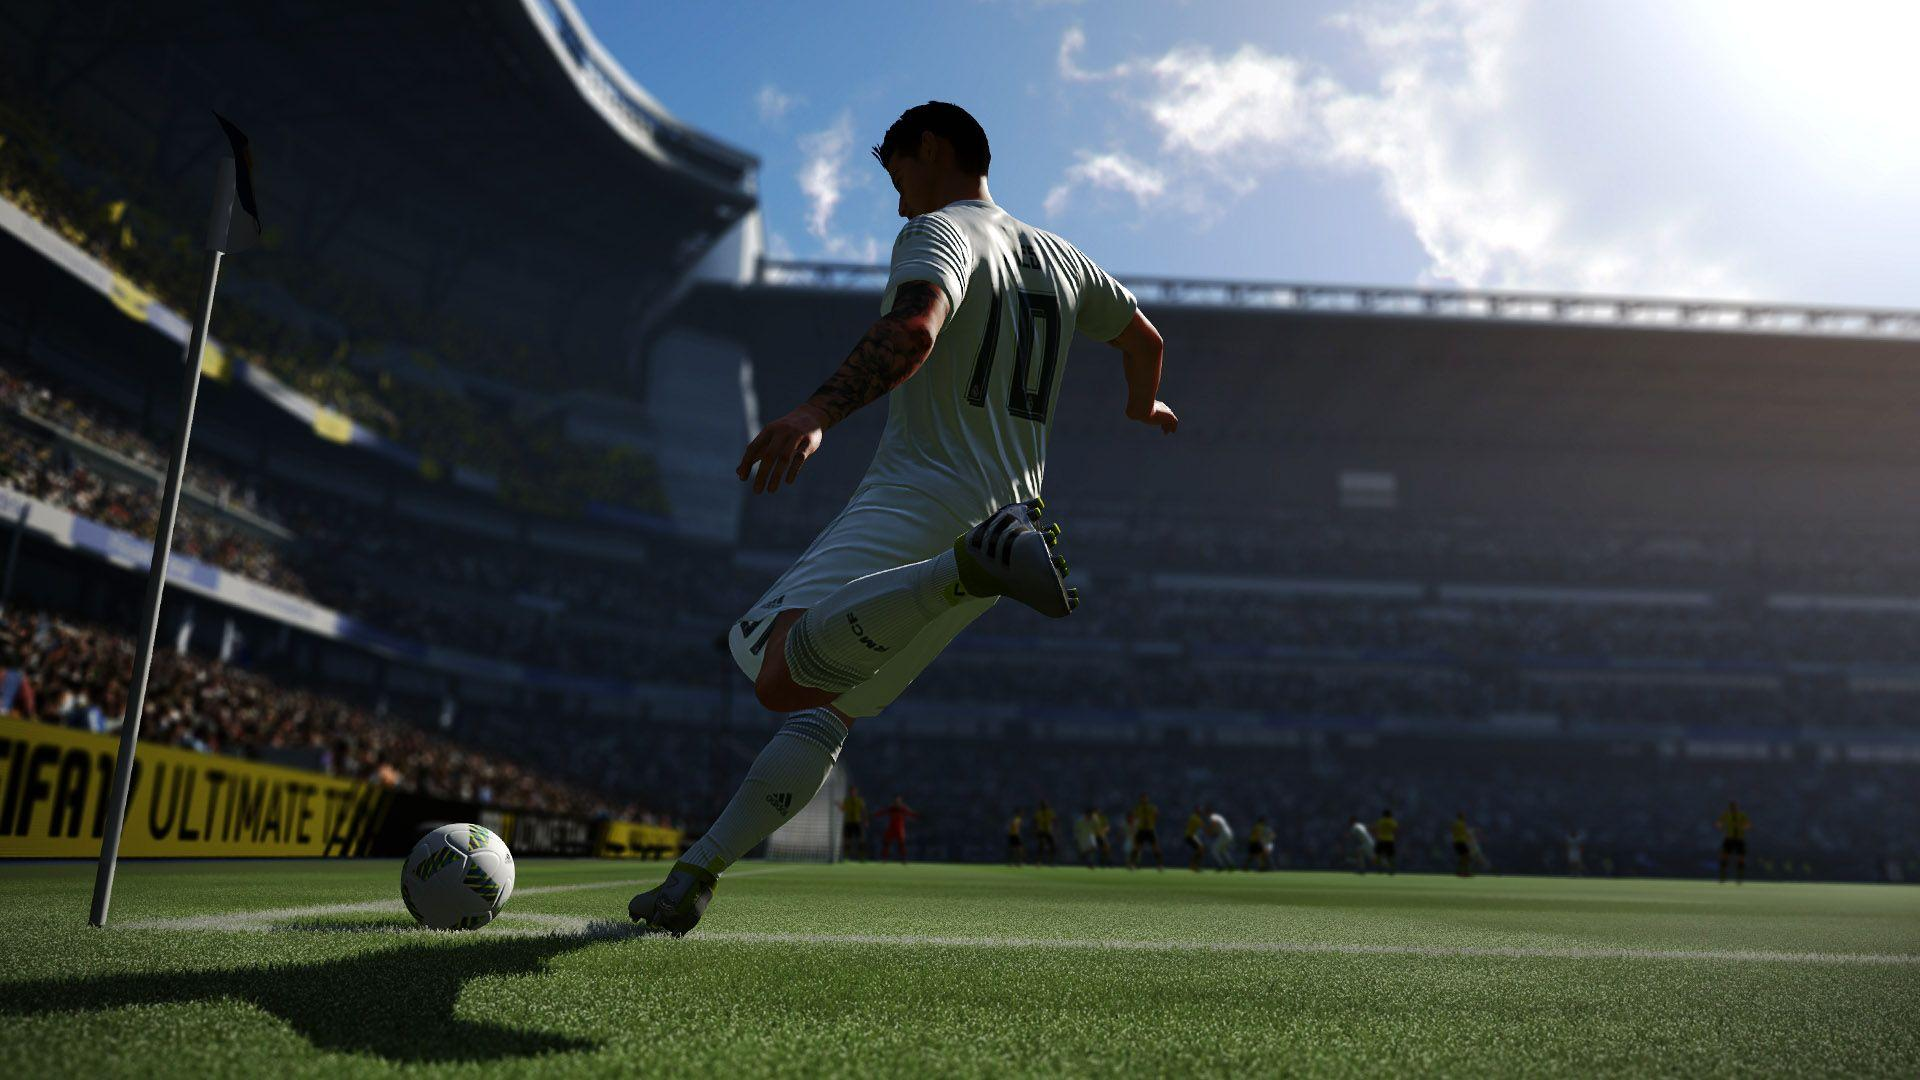 Fifa  Wallpapers Free Games Wallpaper On Iplaytube